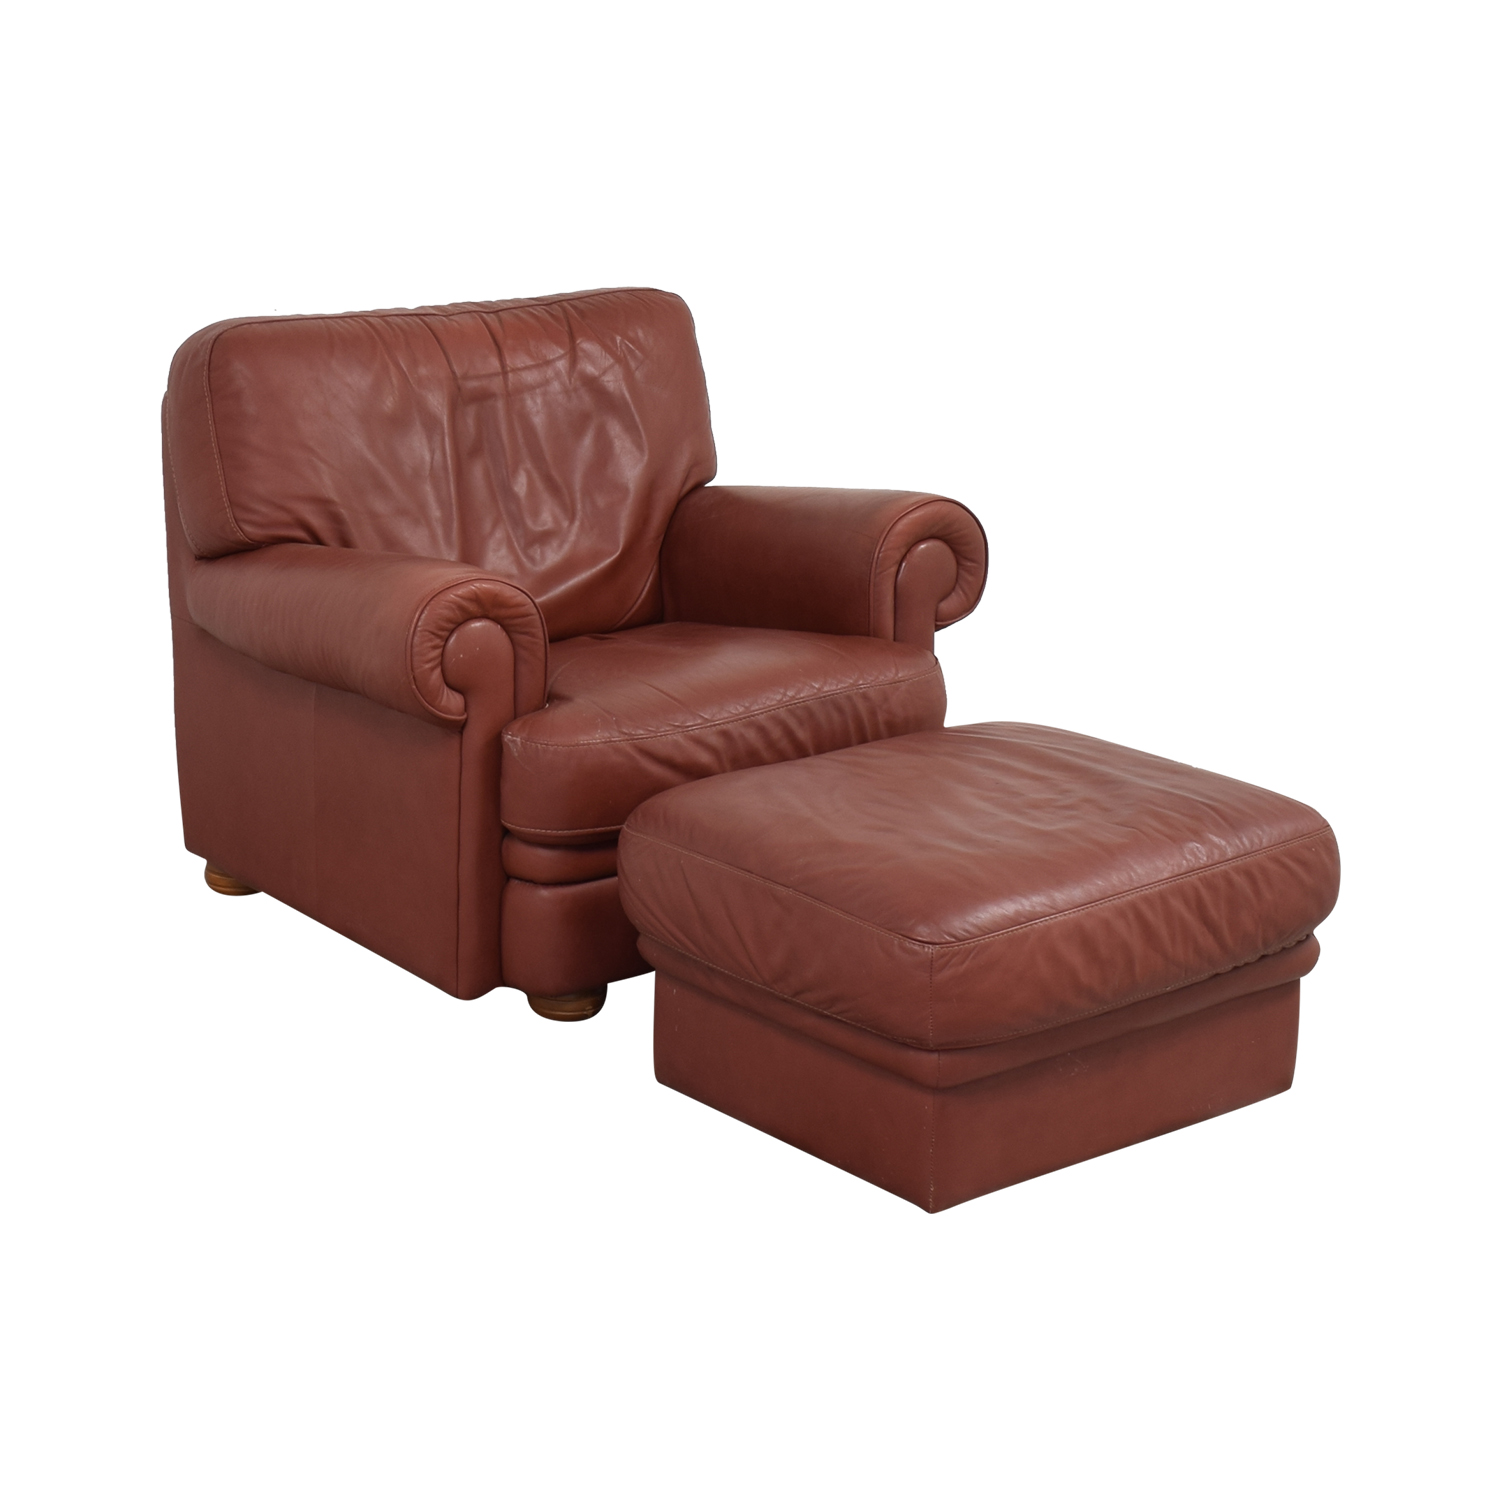 Italian Club Chair with Ottoman red